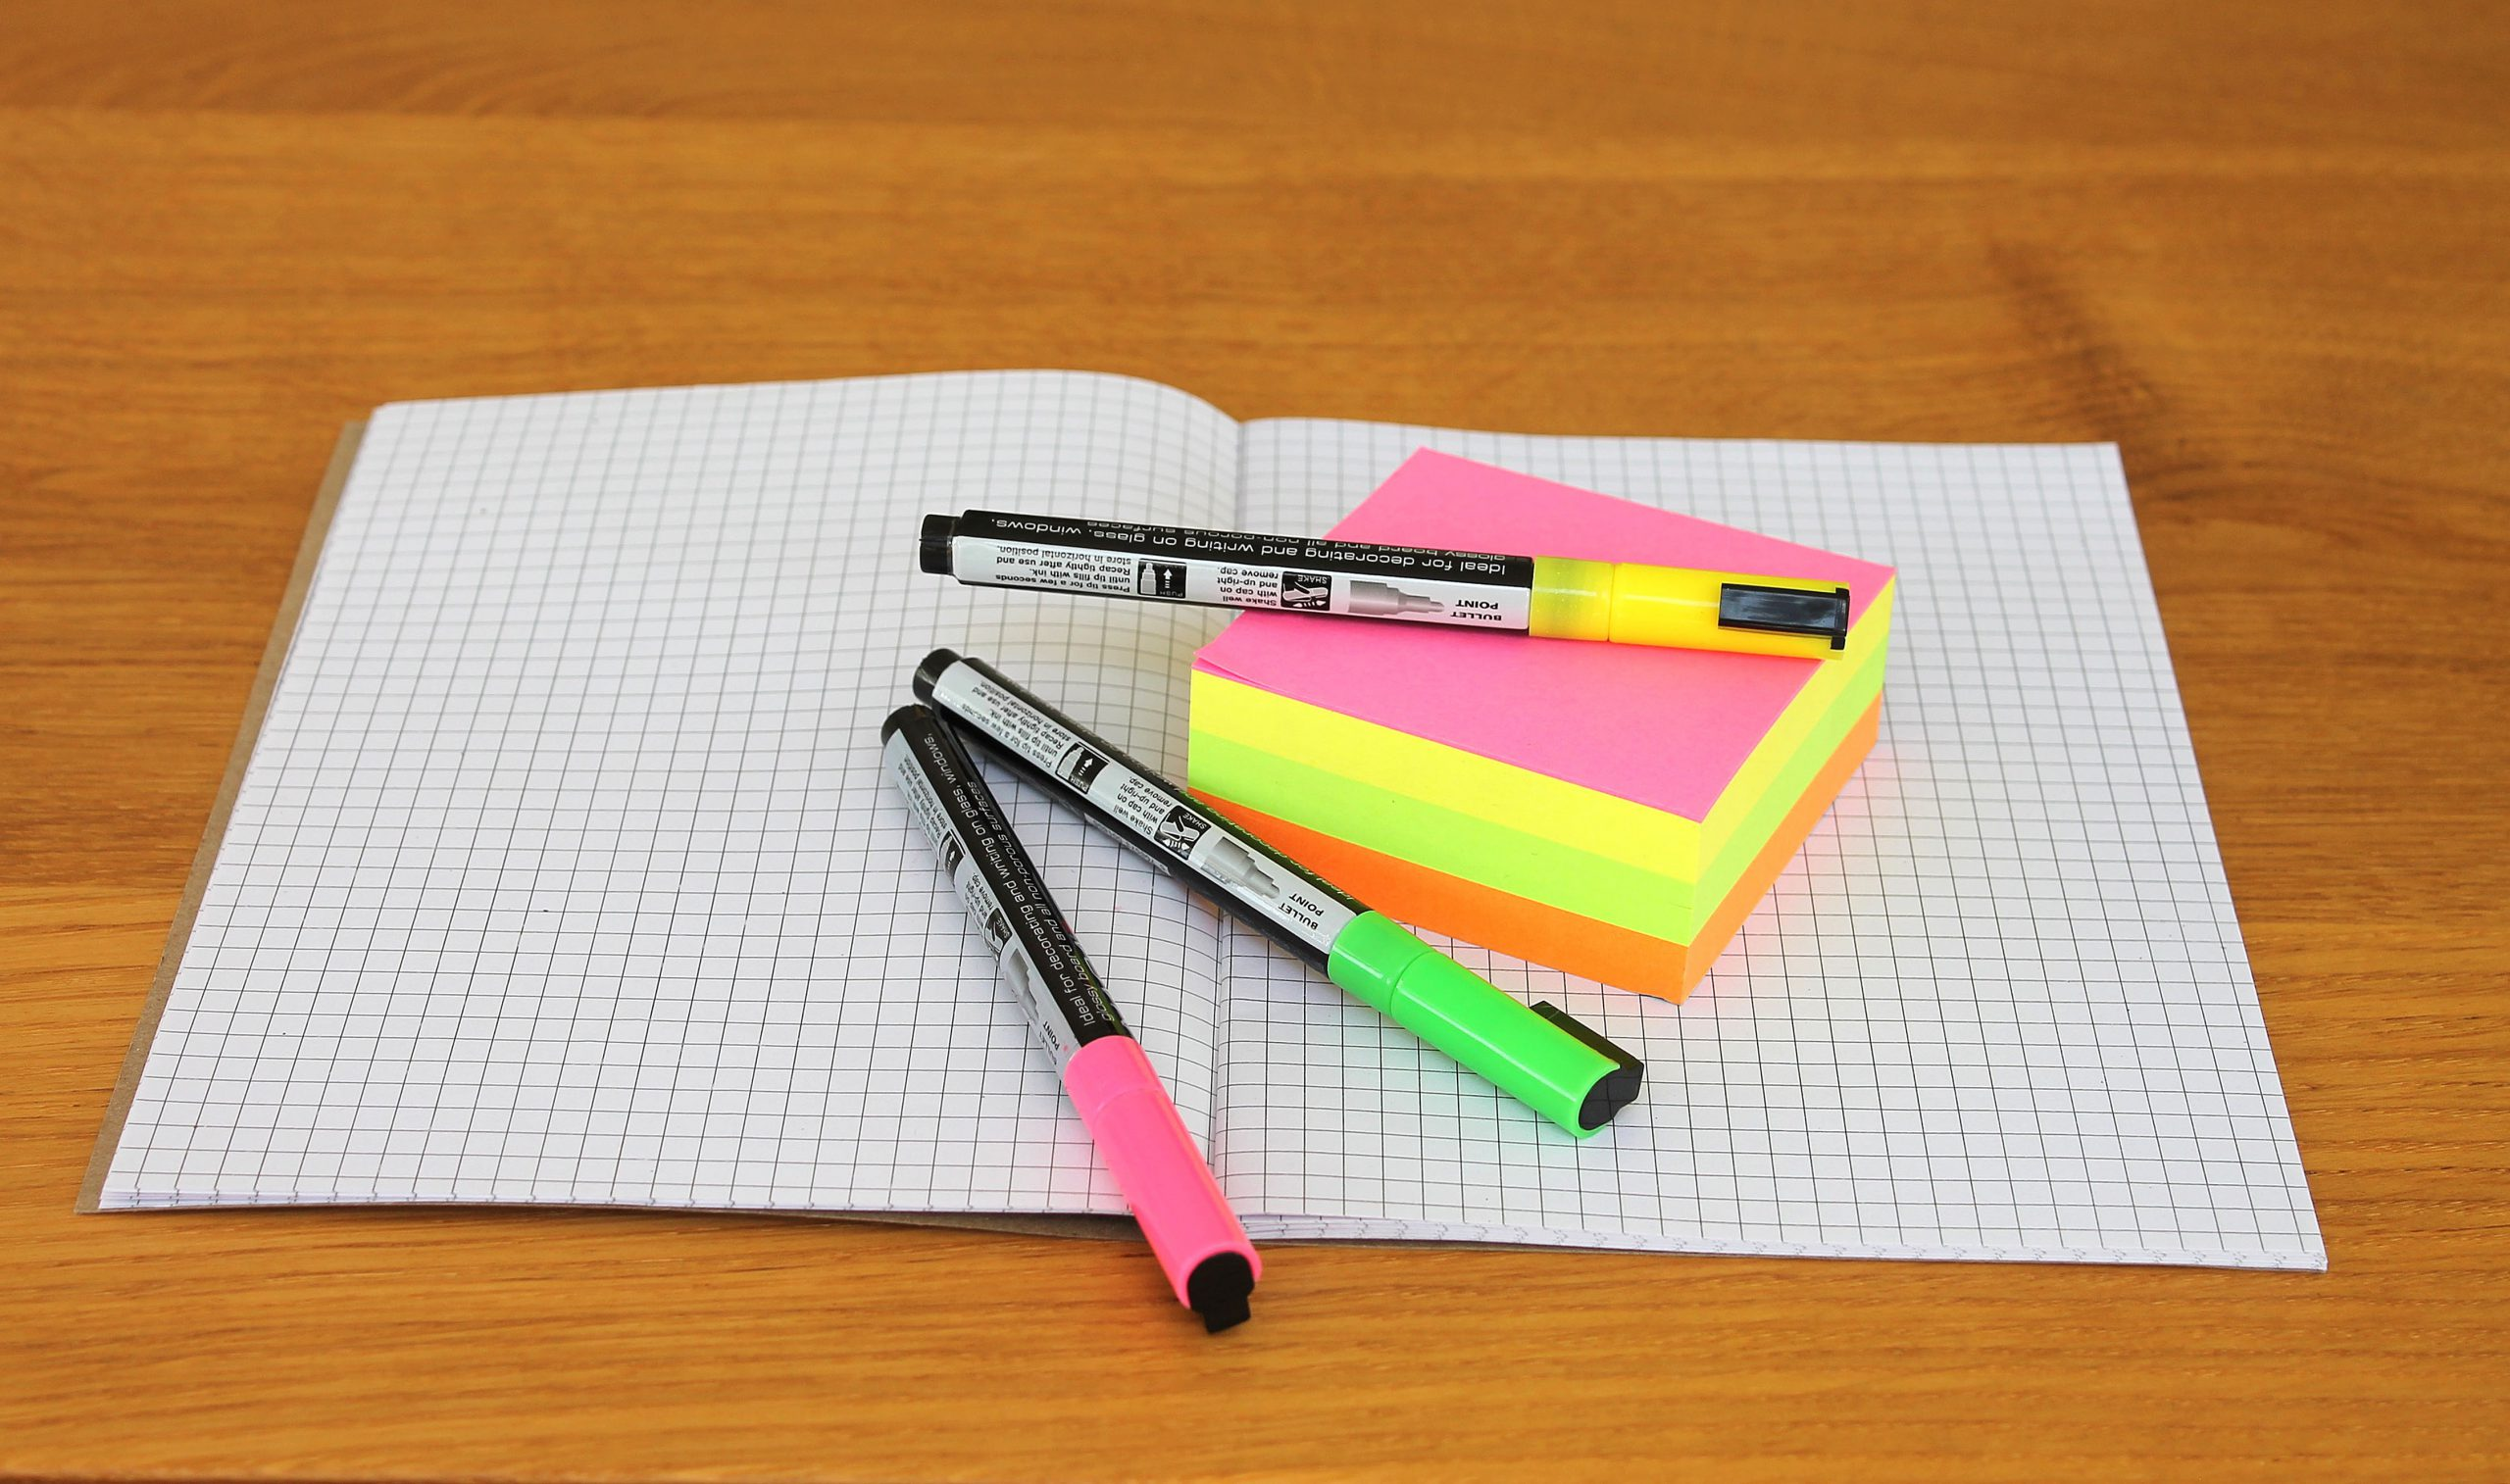 Office things on a school notebook image in Computer and Communication category at pixy.org